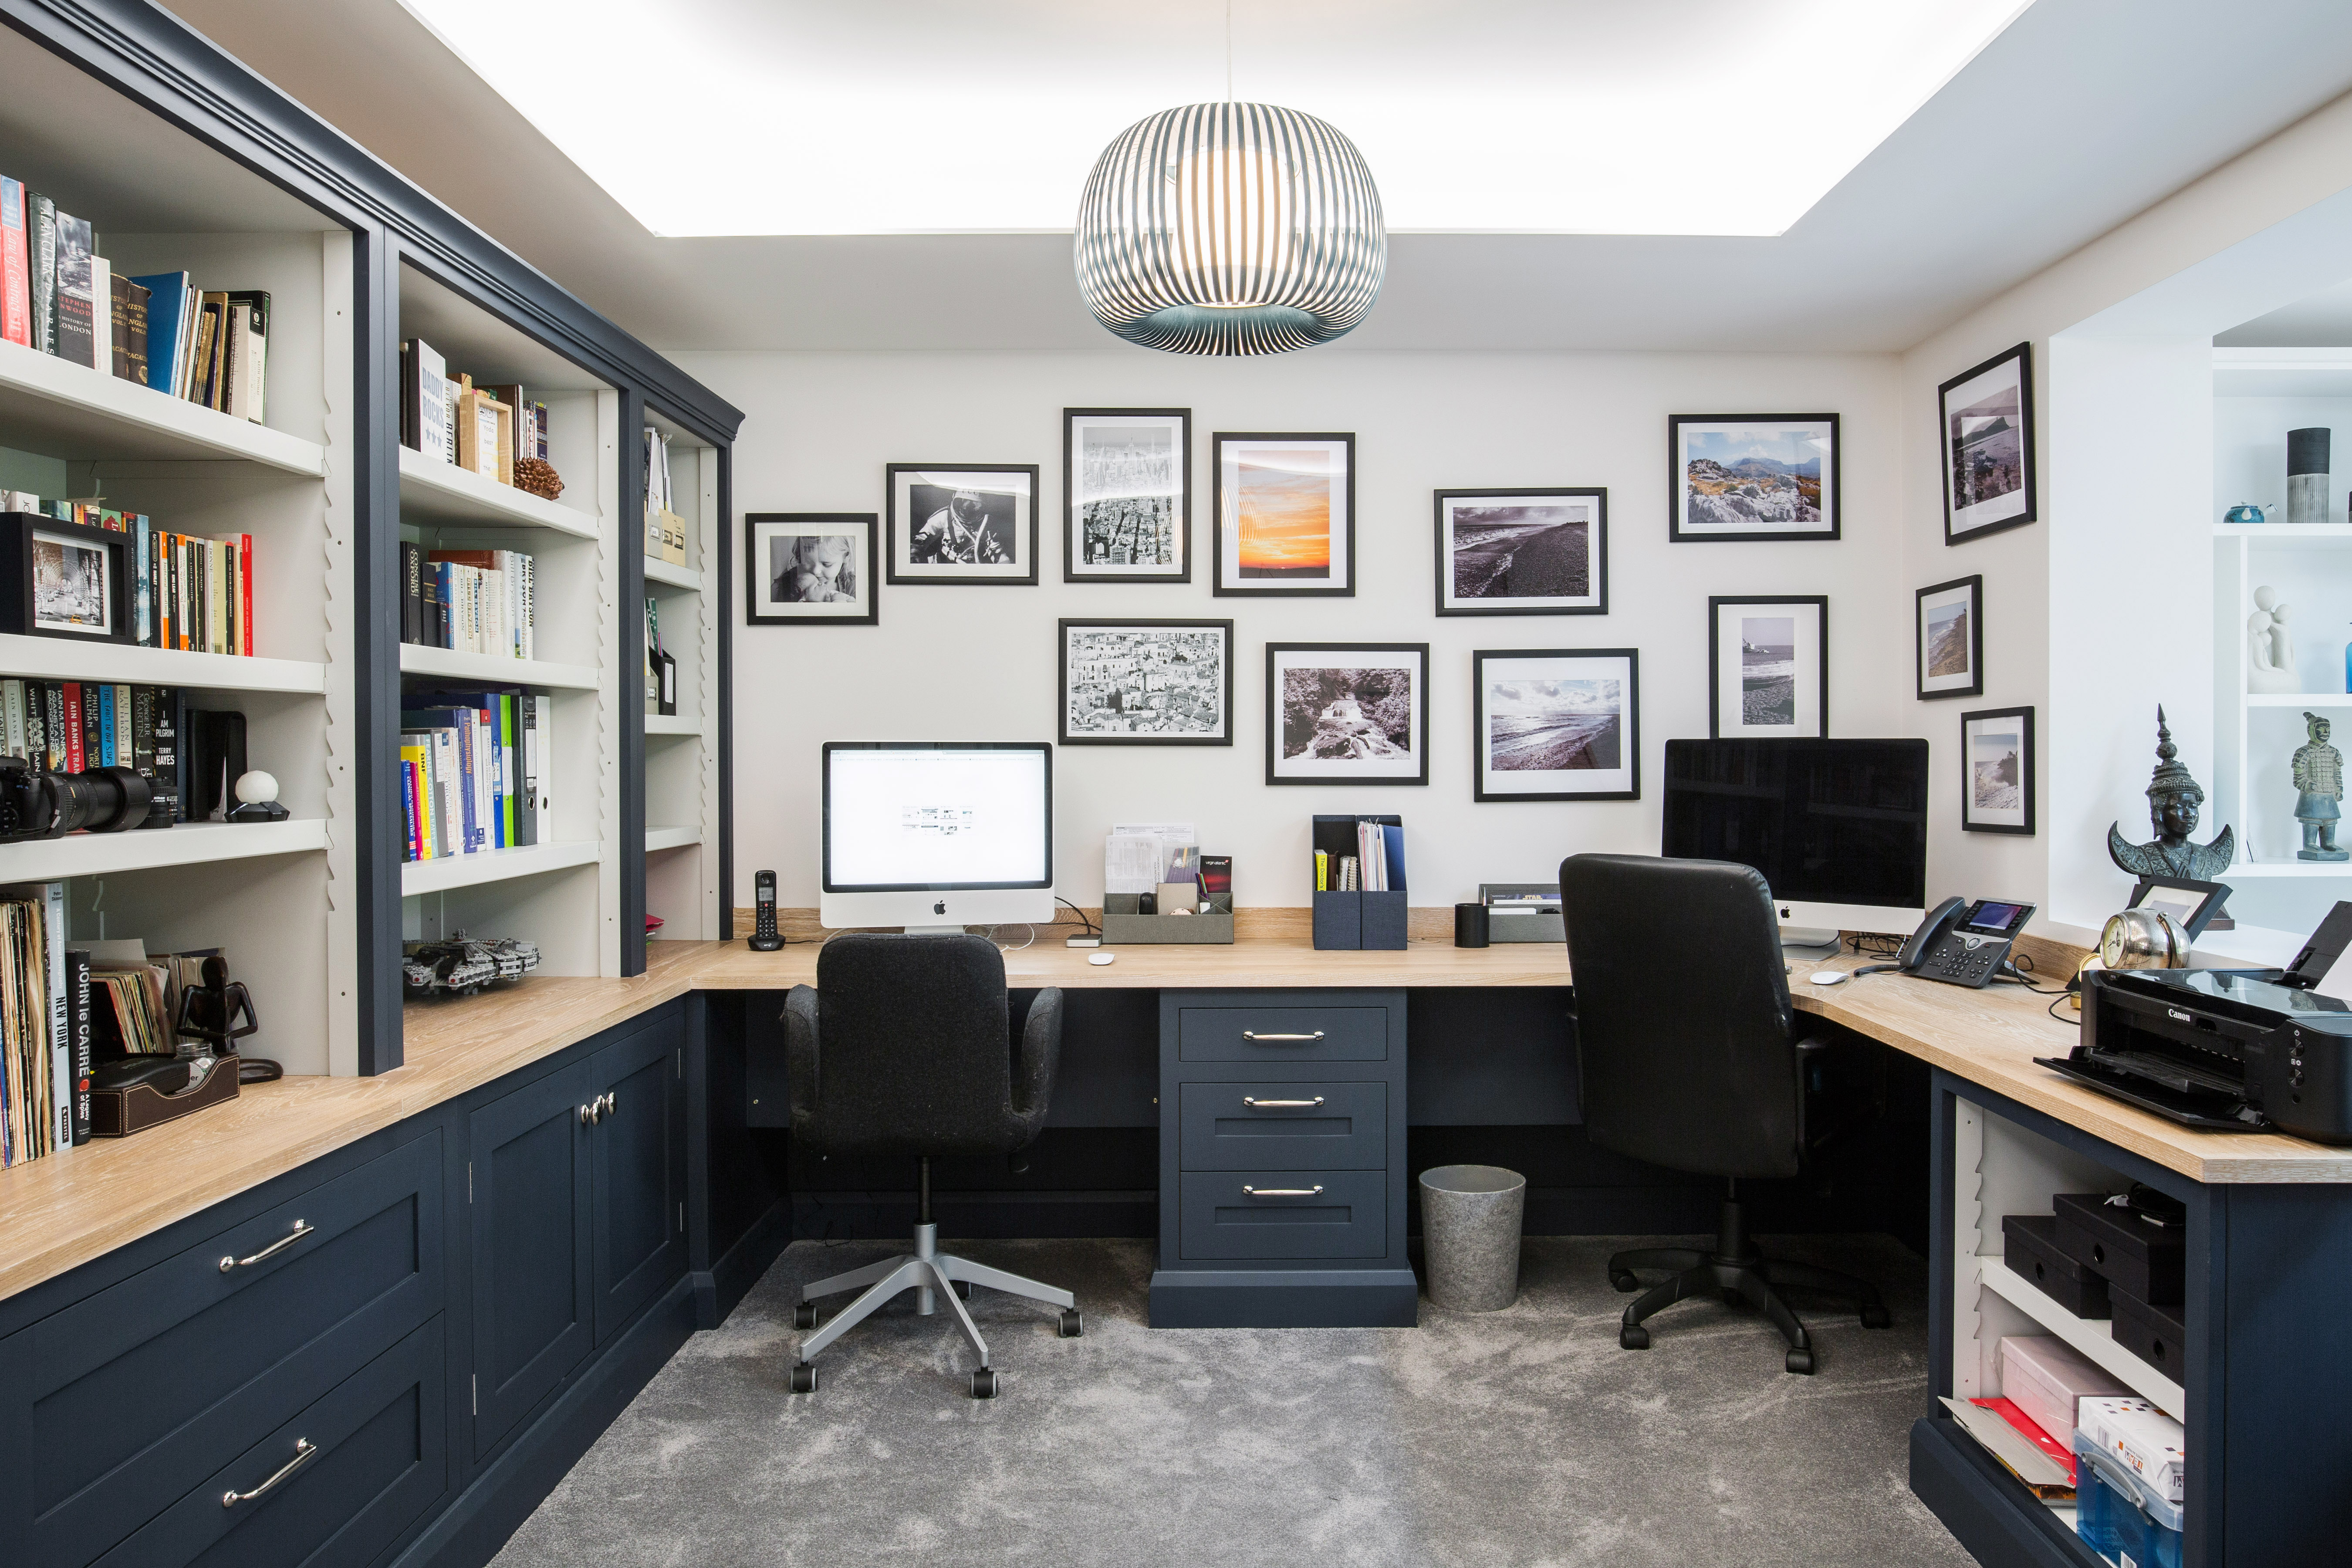 Finding A Good Home And Work Life Balance Is Often A Challenge For Many  Busy Parents, Therefore Ensuring You Have A Practical Home Office Space  That Suits ...